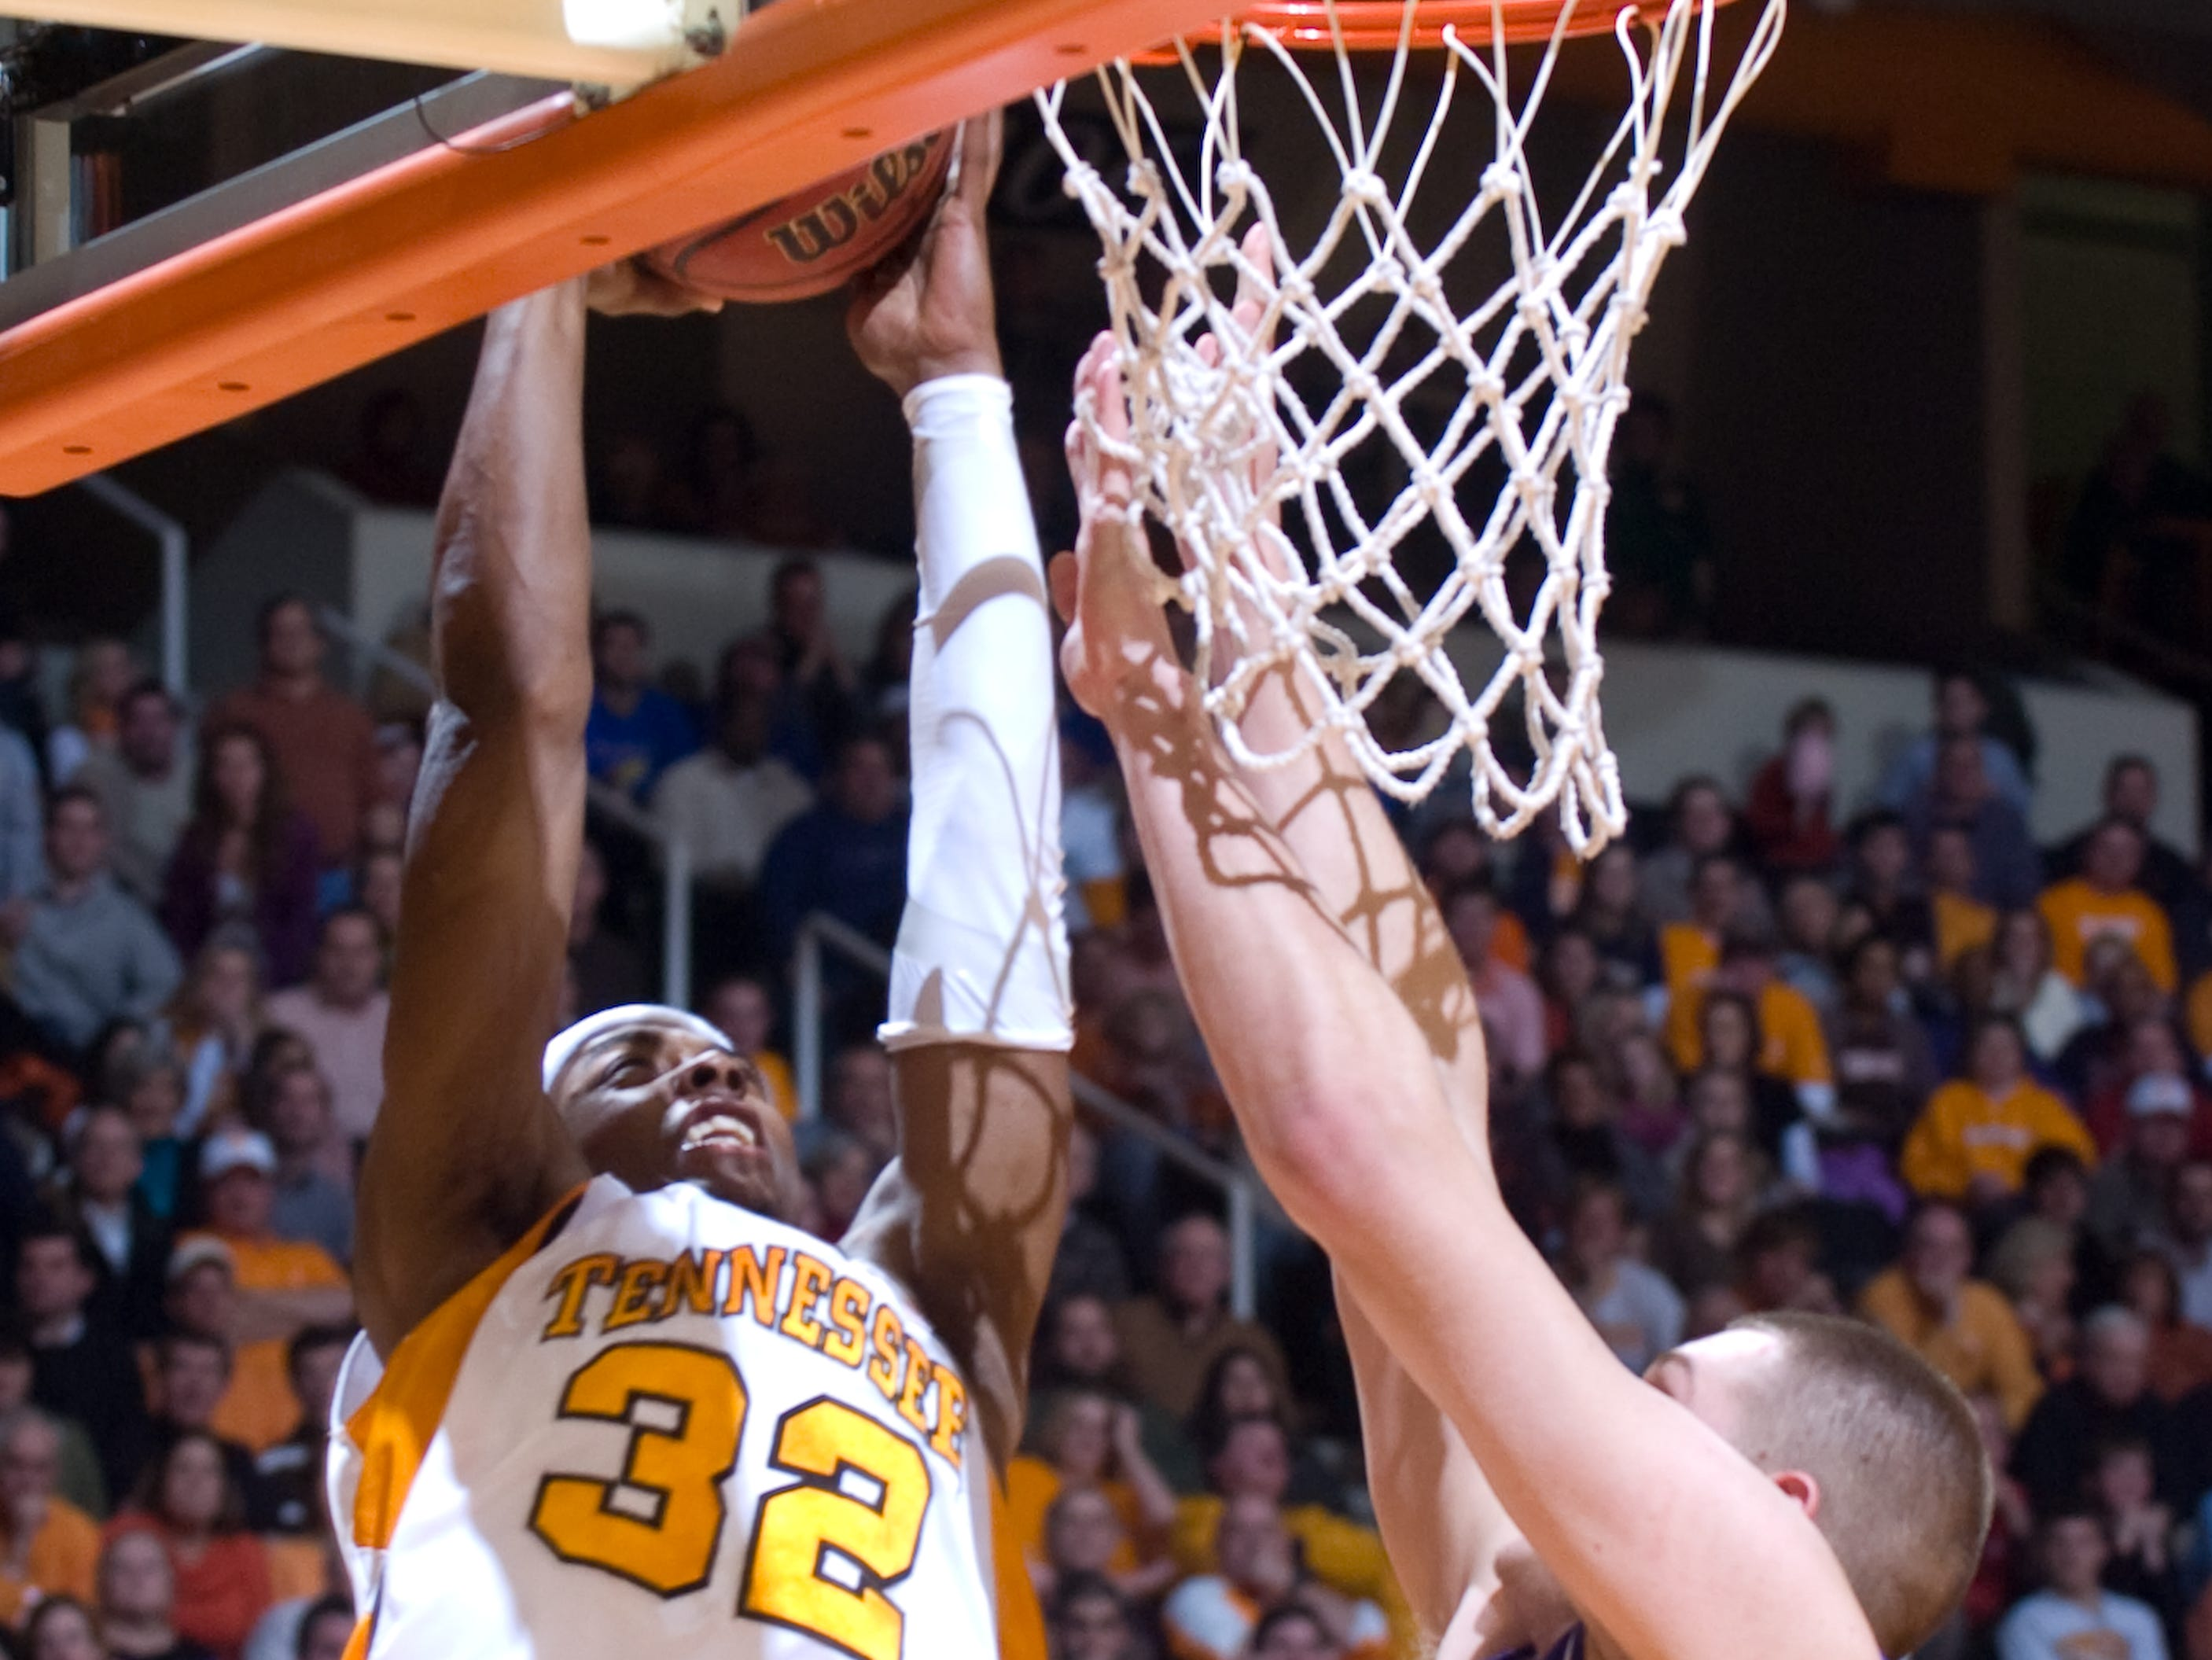 Scotty Hopson goes in for a dunk over Kansas' Cole Aldrich. Hopson had 17 points and 4 rebounds. Tennessee upsets number one ranked  Kansas 76-68 at Thompson-Boling Arena  Sunday, Jan 10, 2010.